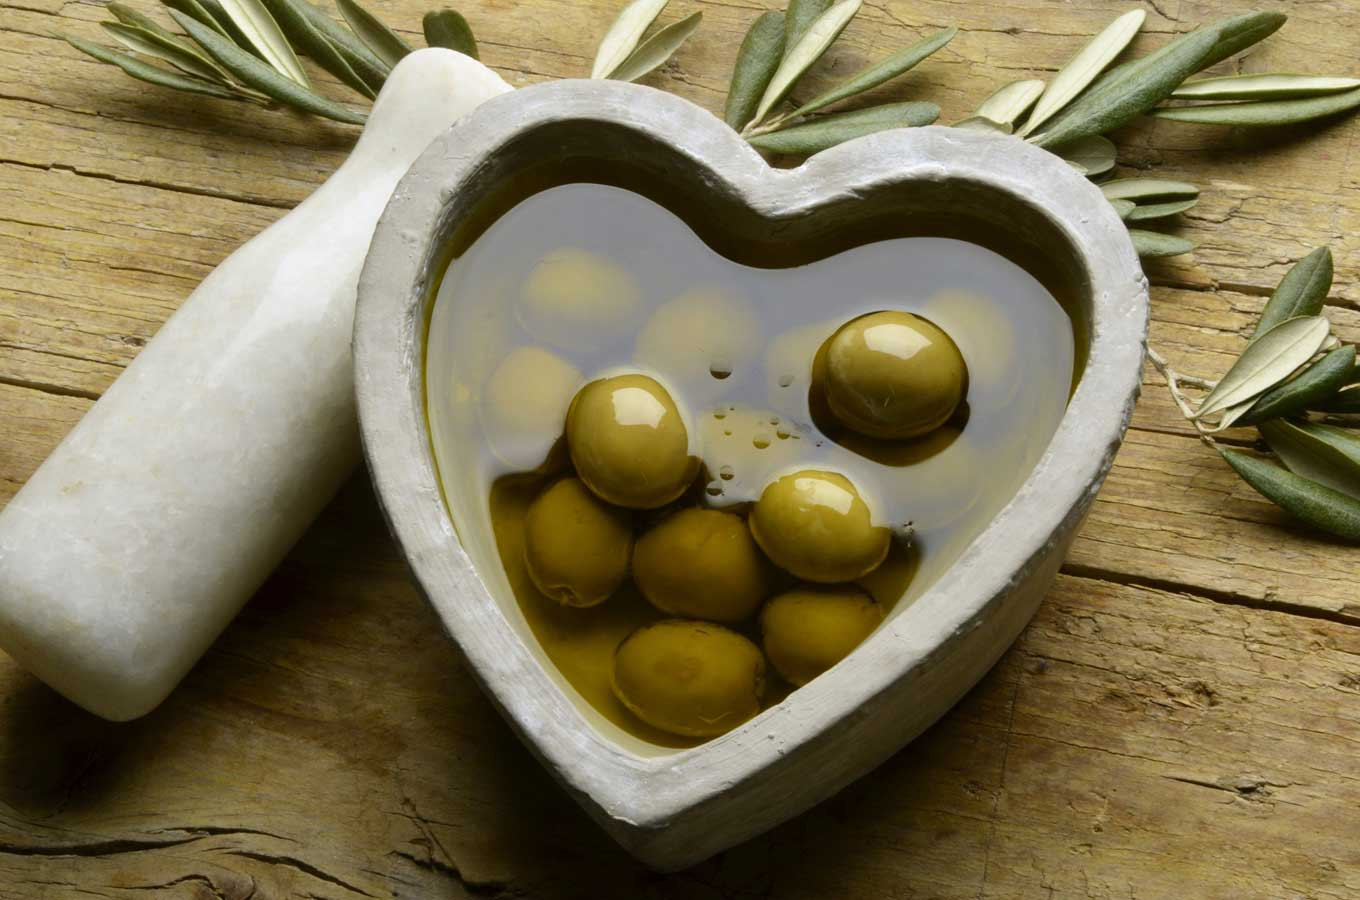 The Greek EVOO acts like medicine, as shown by the first two studies